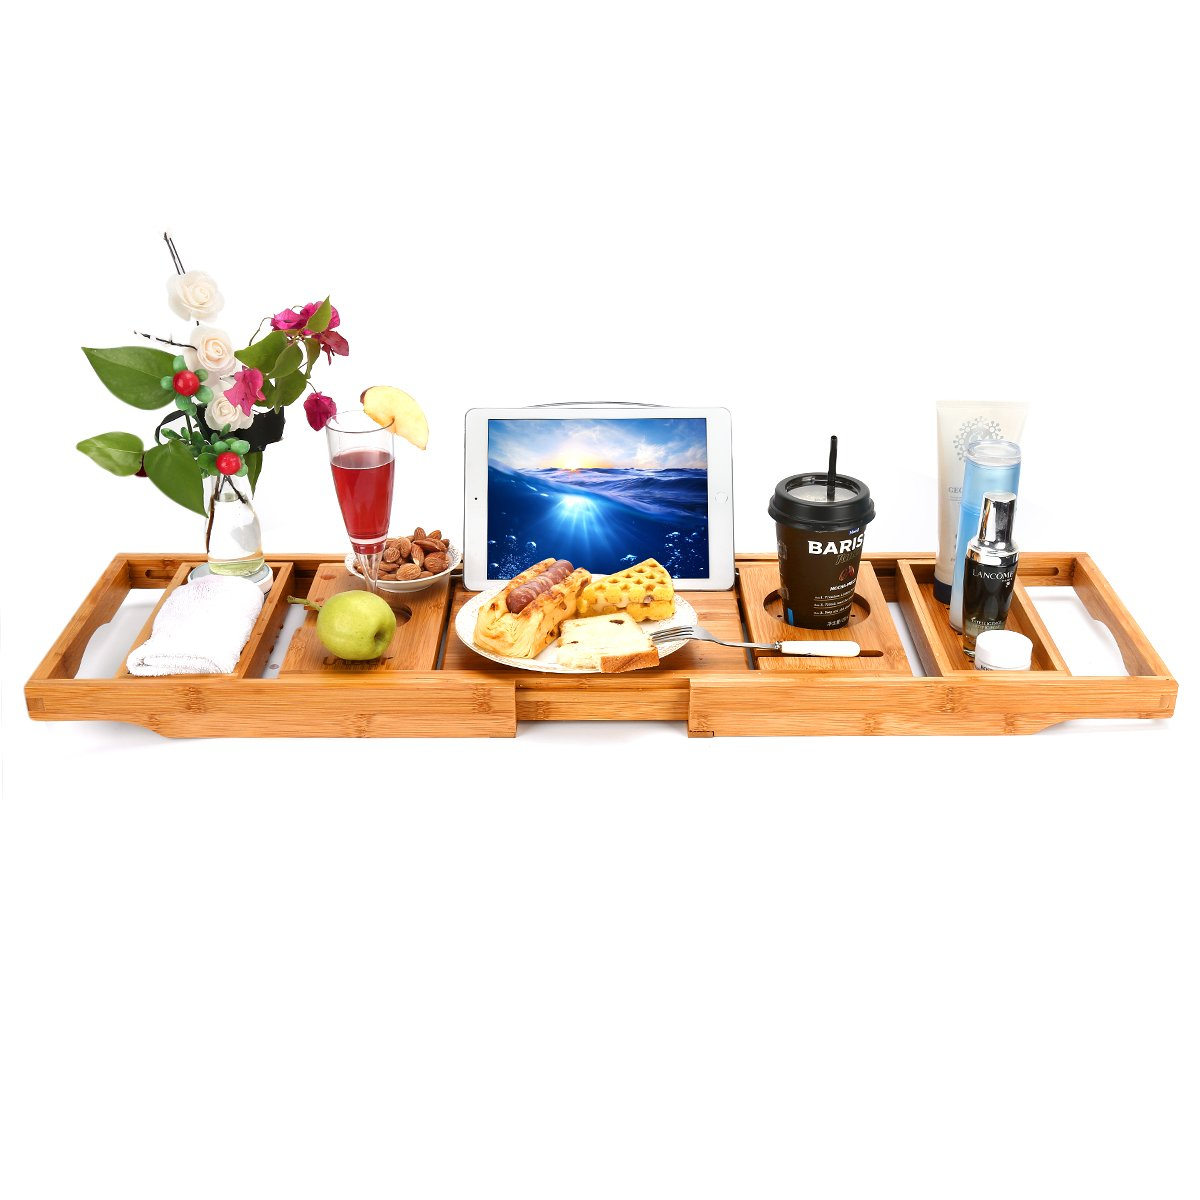 Wooden-Life Bathtub Caddy Tray& Laptop Desk with Foldable Legs, 2 in 1 Wisdom Design - Luxurious Bathtub Caddy with Extending Sides, Tablet Holder, Reading Rack,Cellphone Tray and Wine Glass Holder by Wooden-Life (Image #7)